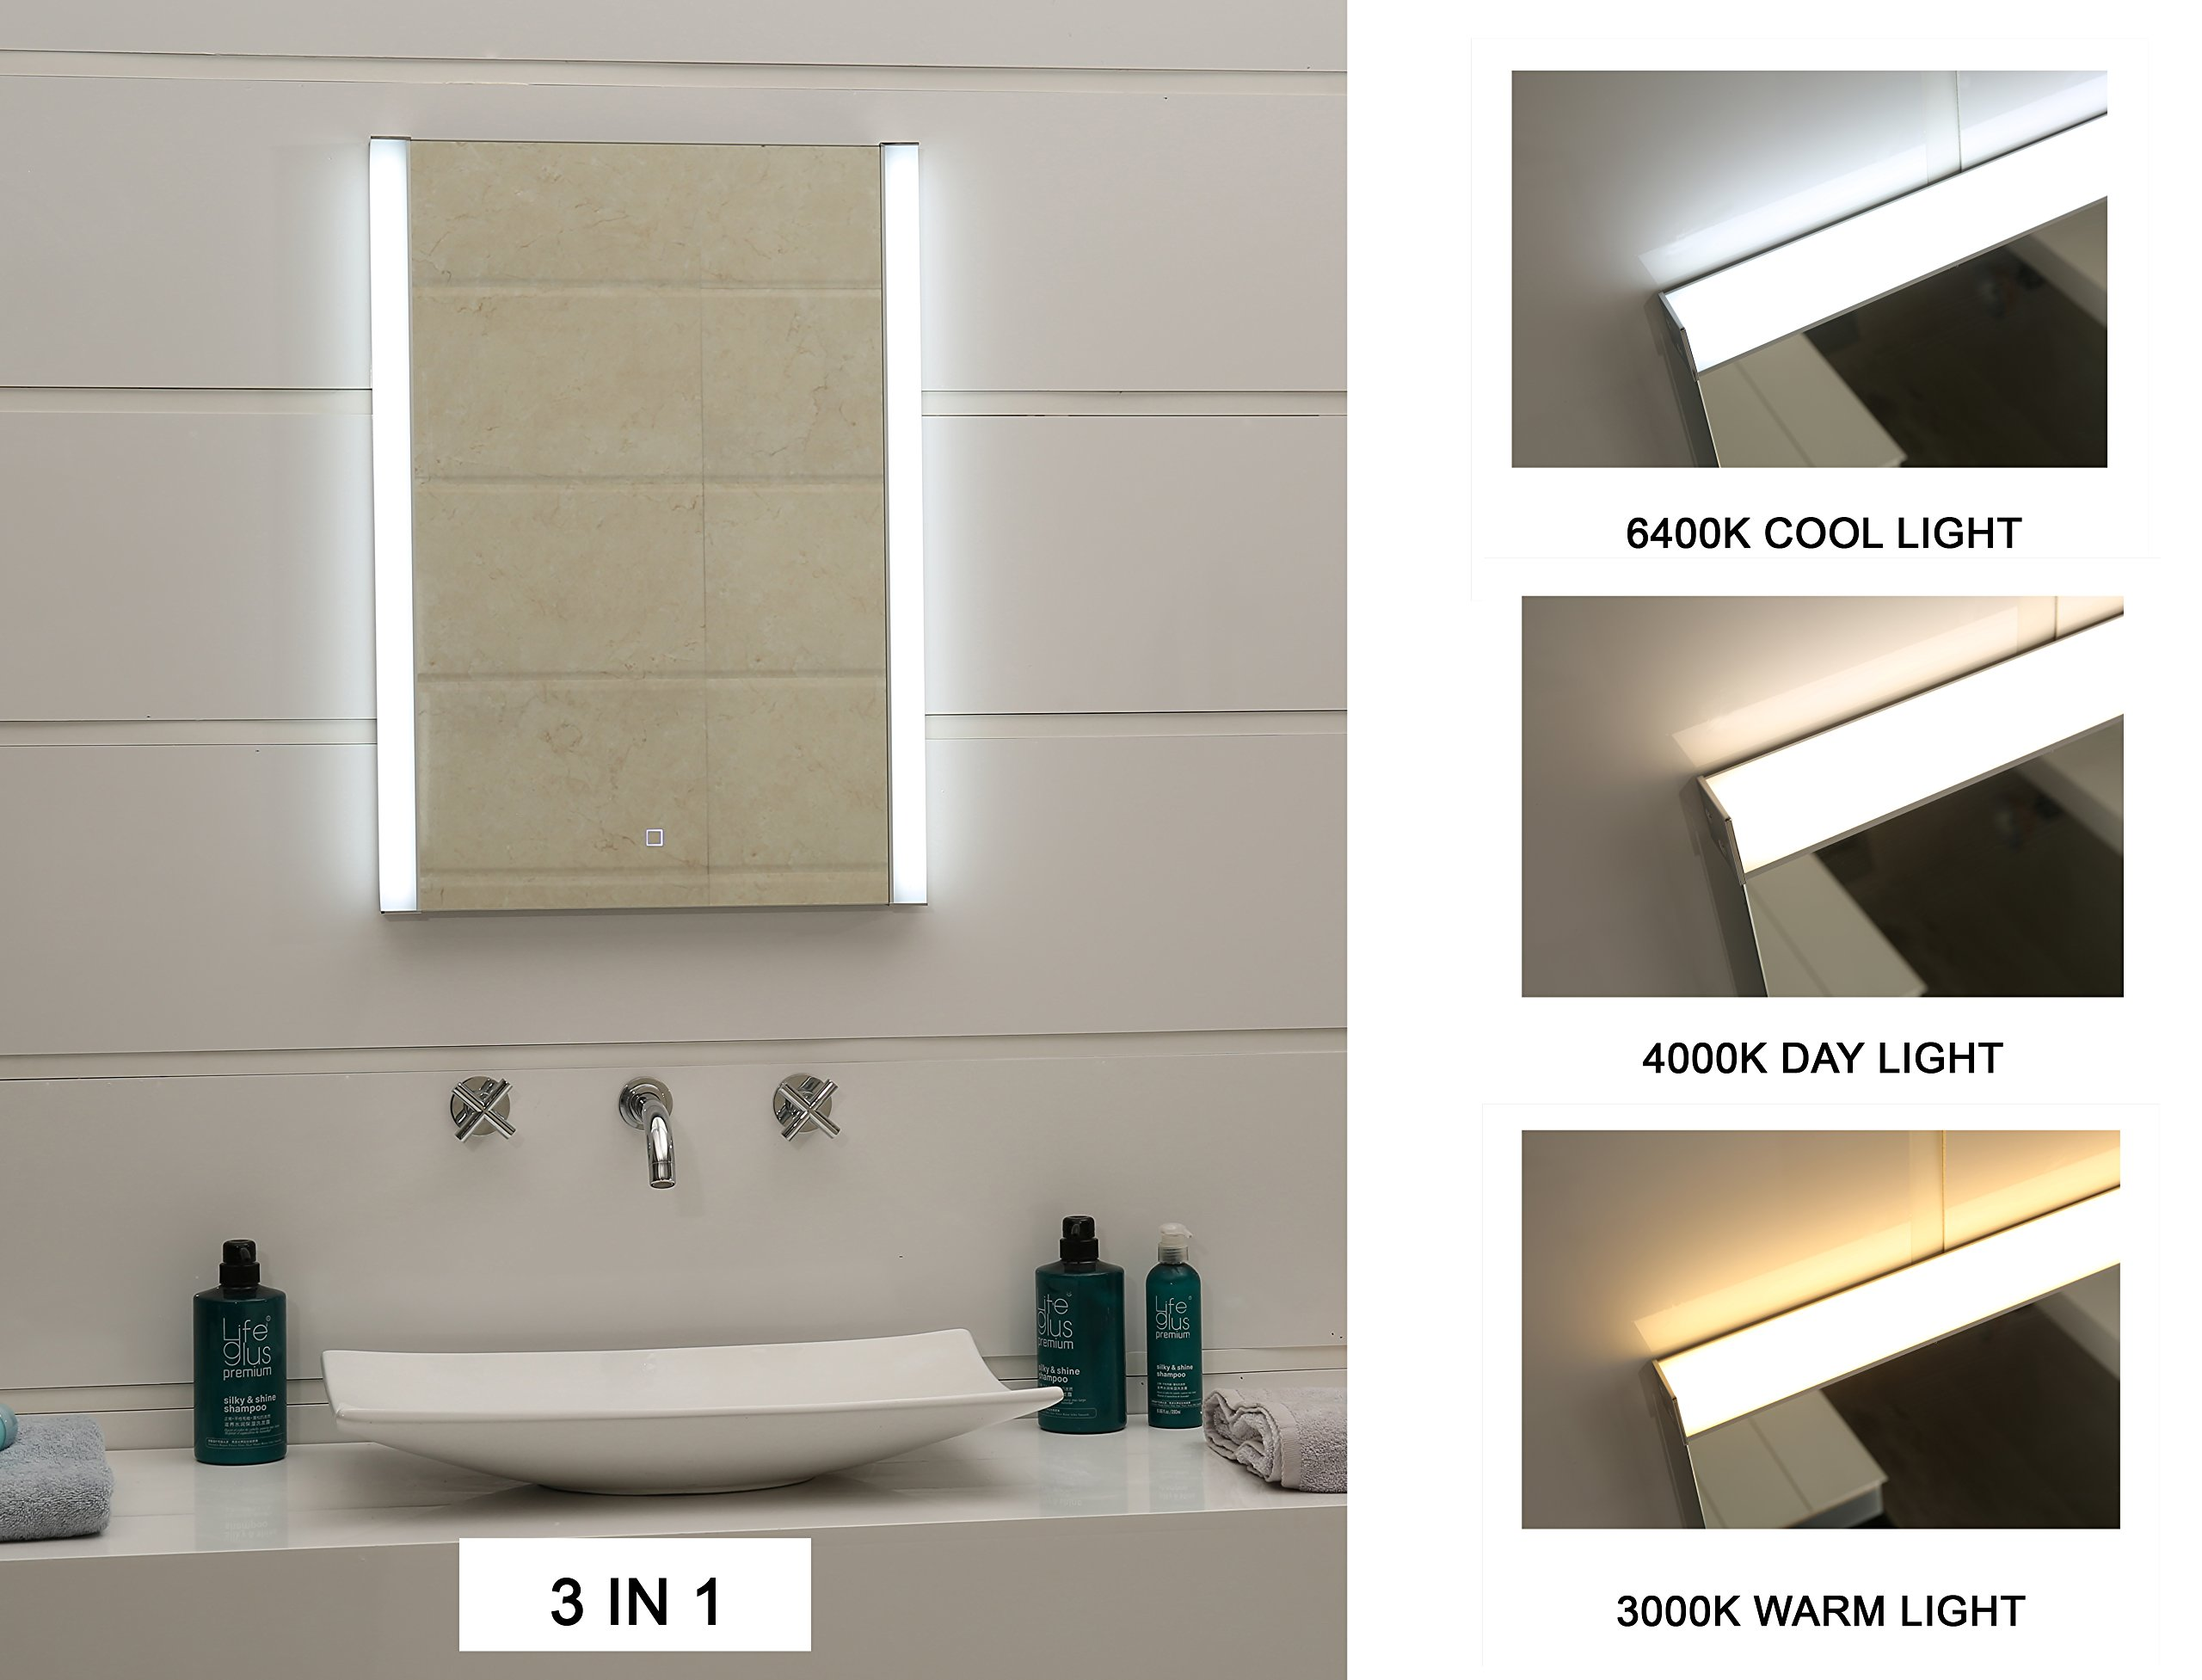 24X31.5 Inch Super Bright LED Light Changeable Bathroom Mirror With Touch Switch (GS100T-24315)